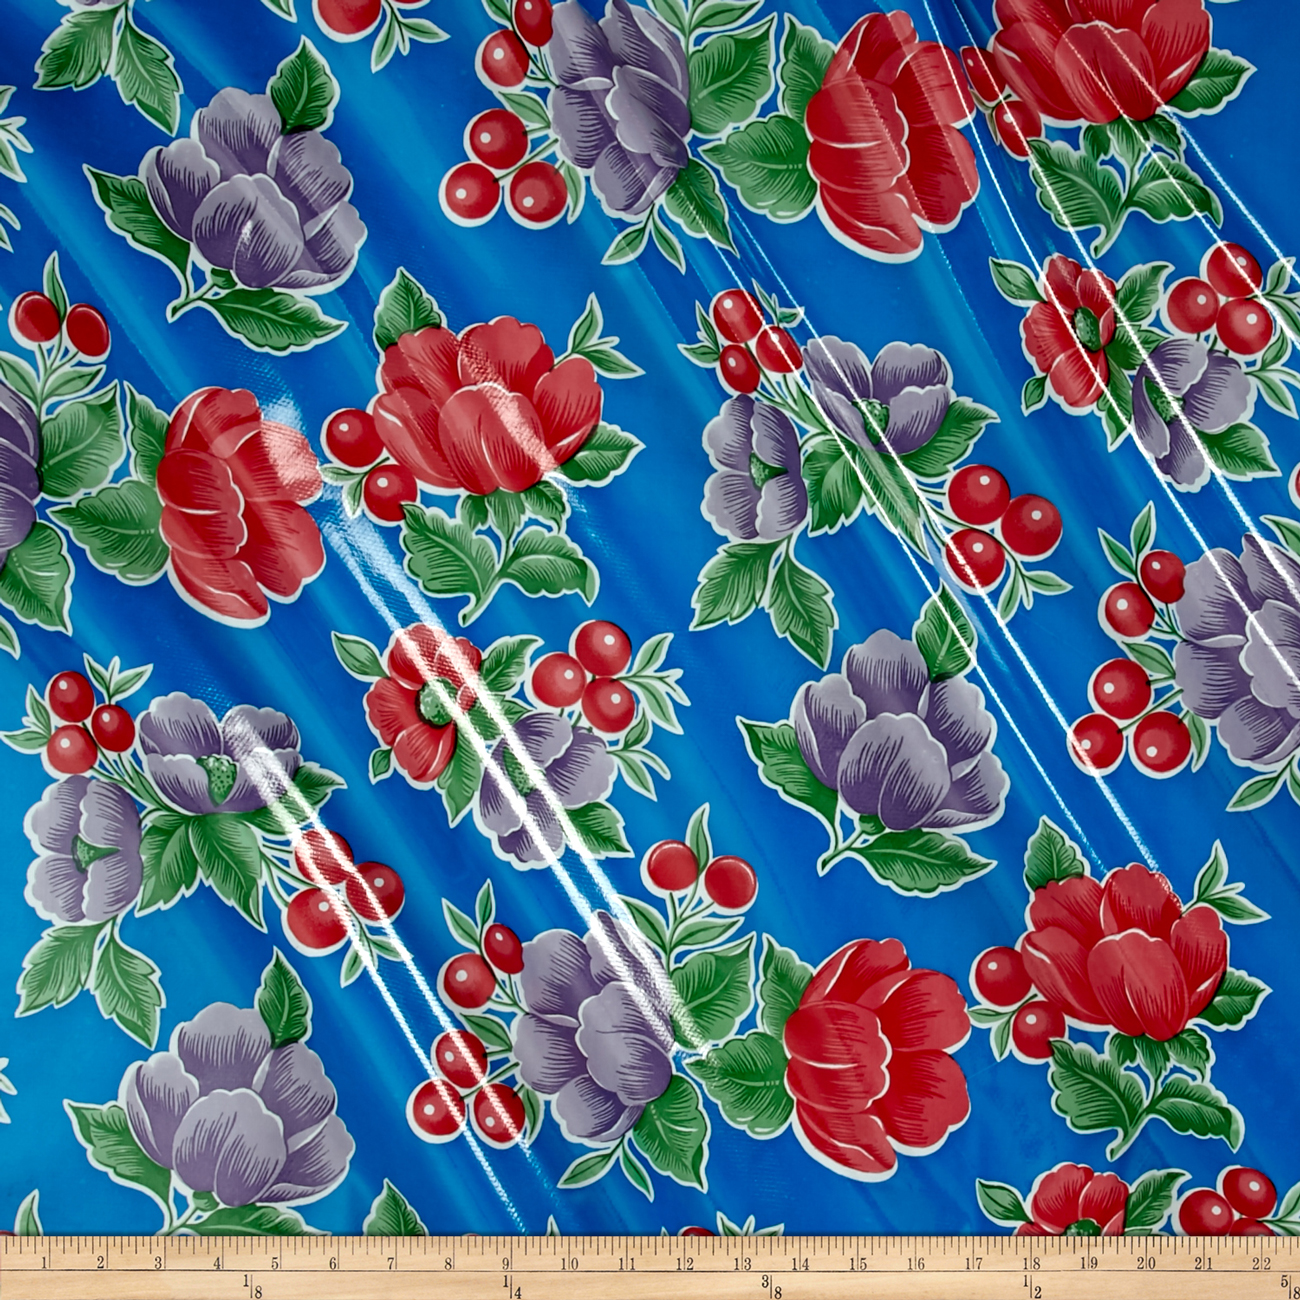 Oilcloth Poppy Blue Fabric by Oilcloth International in USA